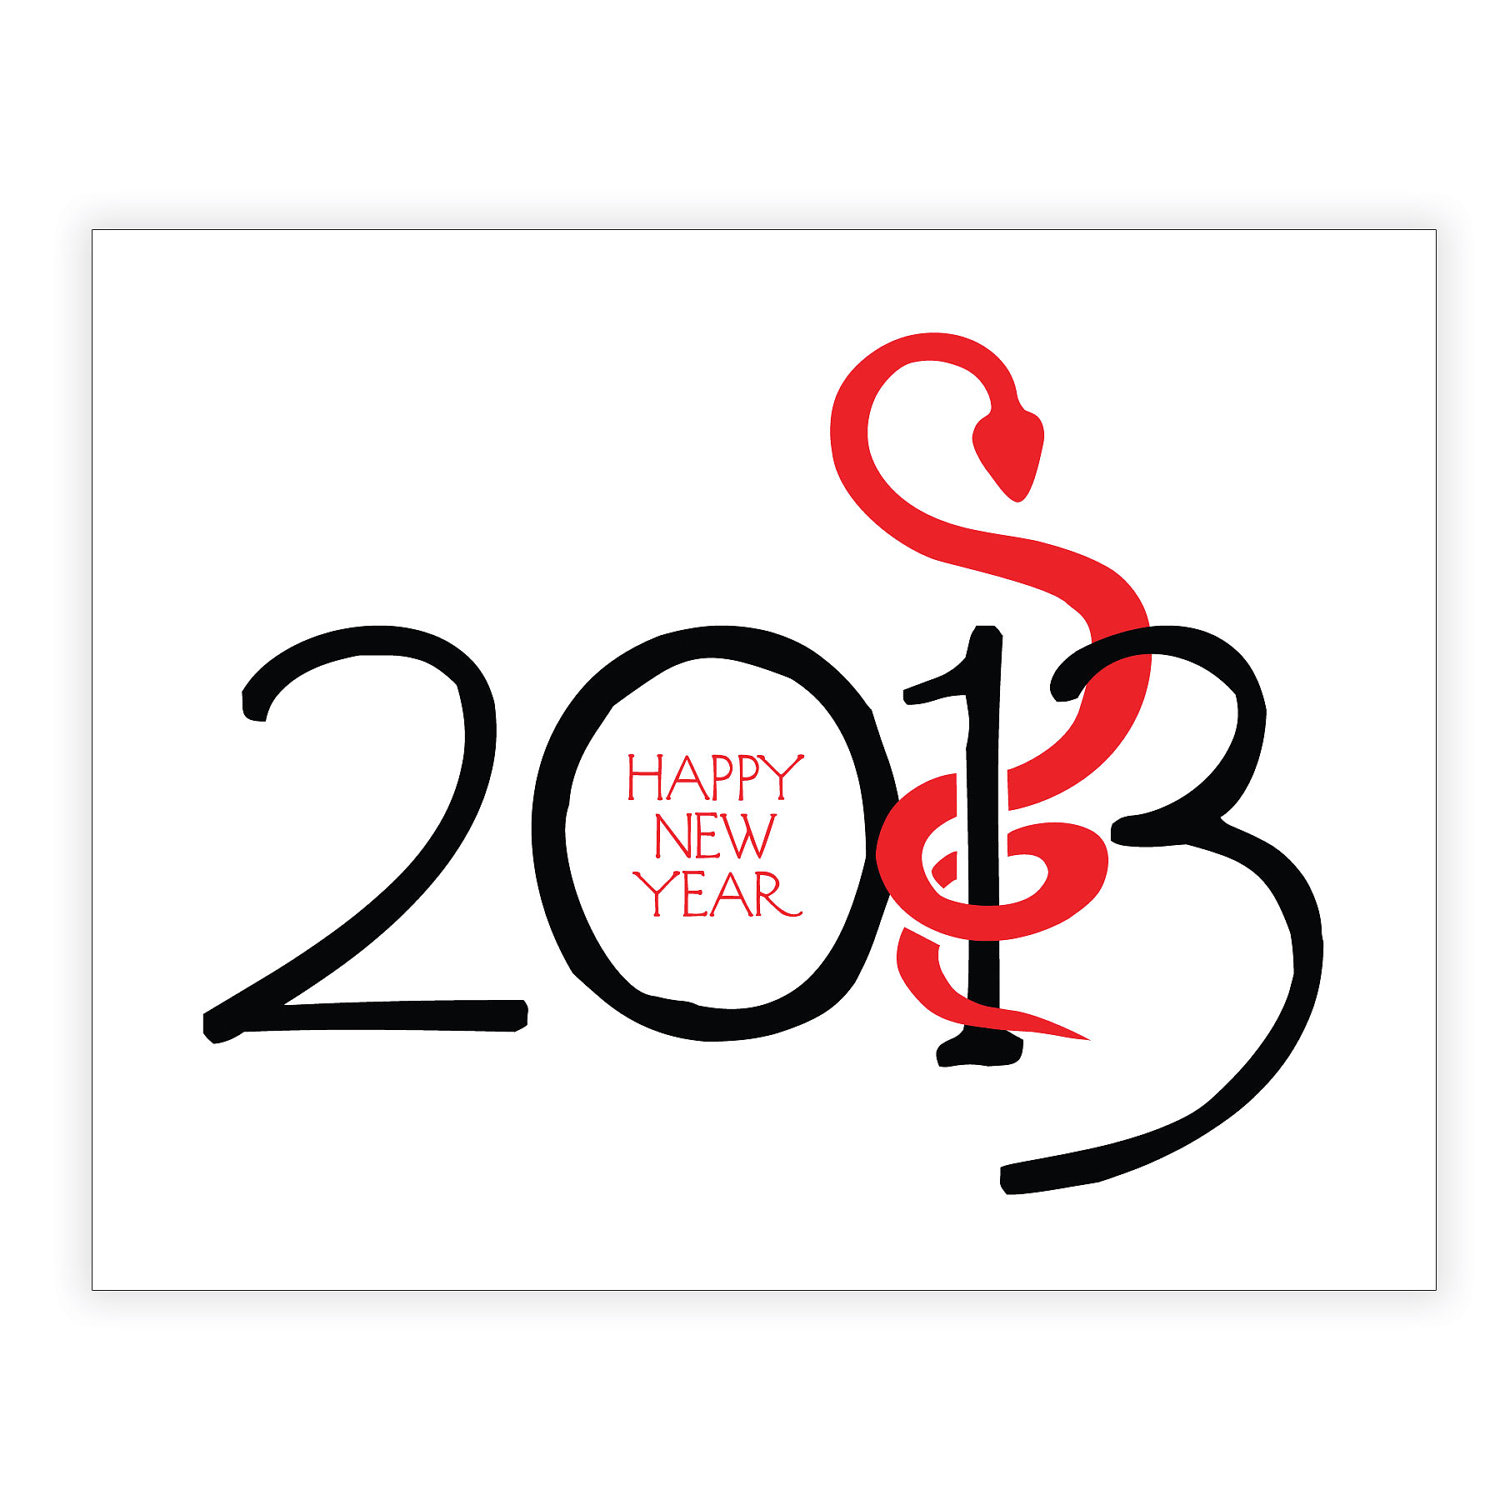 New Year Wishes New Year 2013 Greetings Greeting Cards 2013